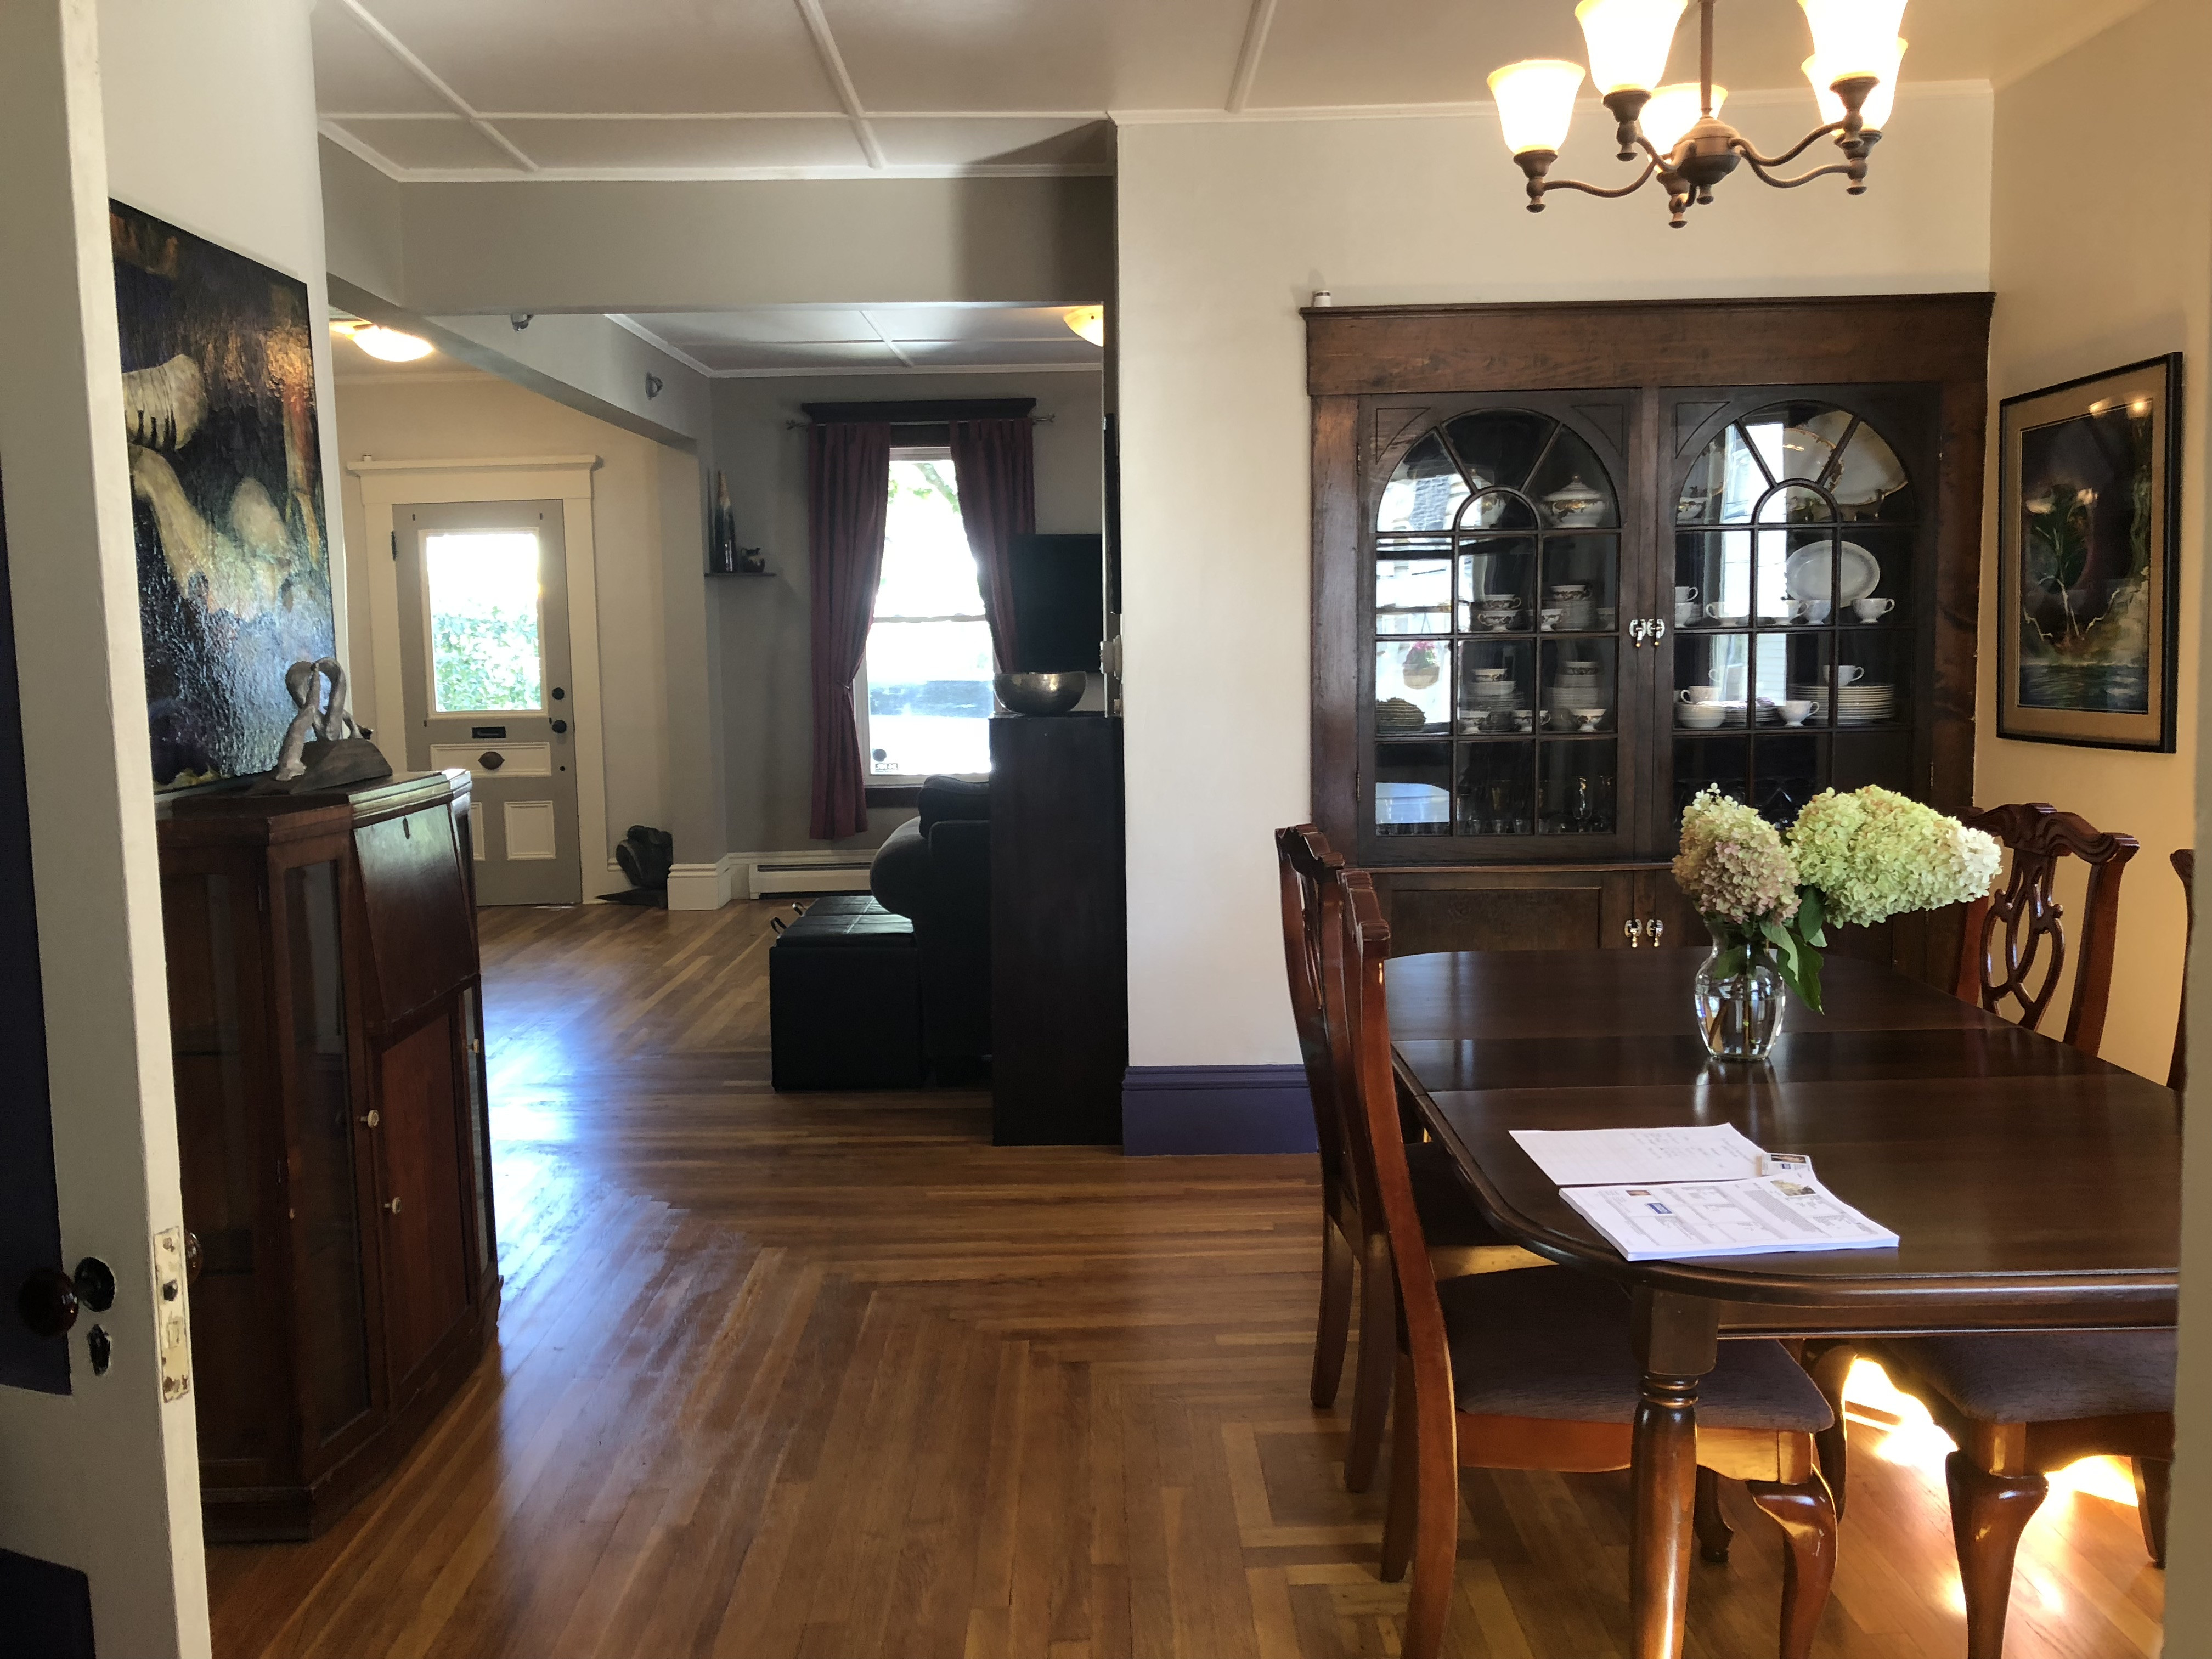 hardwood floor refinishing portsmouth nh of 714 beech st coldwell banker hobin realty inside art aficionados and history buffs own a slice of manchester history within walking distance to the currier museum of art this beautiful victorian style